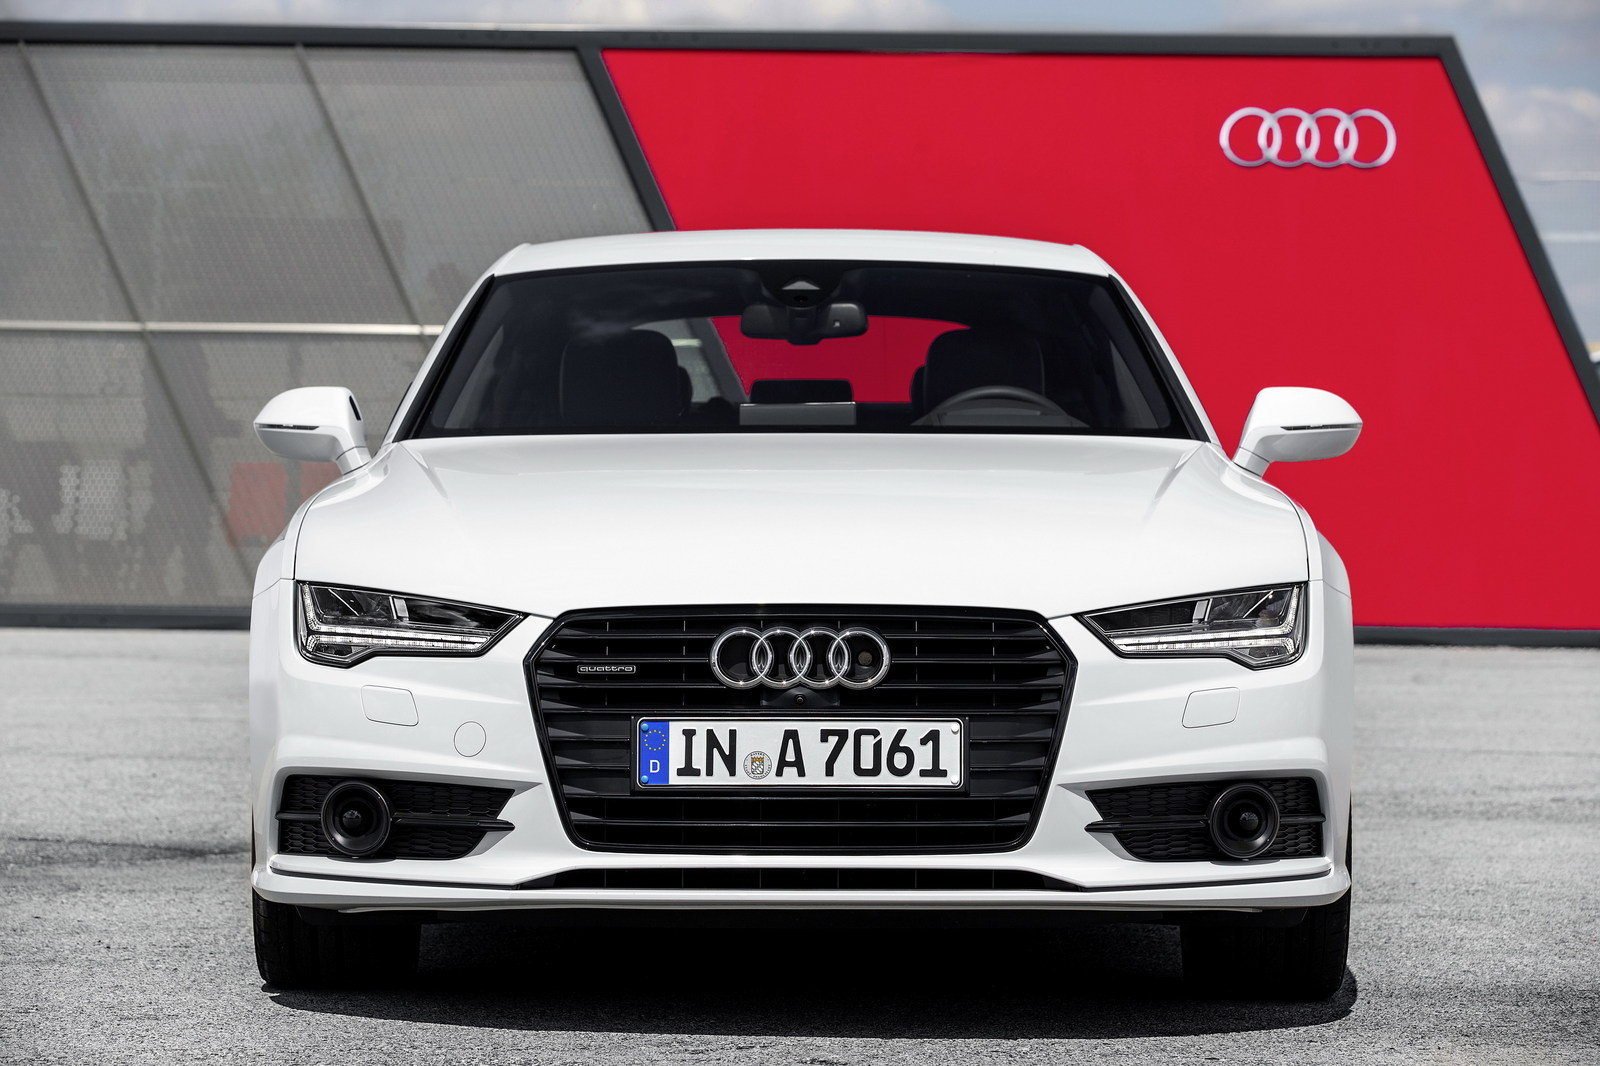 2017 audi a7 picture 673712 car review top speed. Black Bedroom Furniture Sets. Home Design Ideas